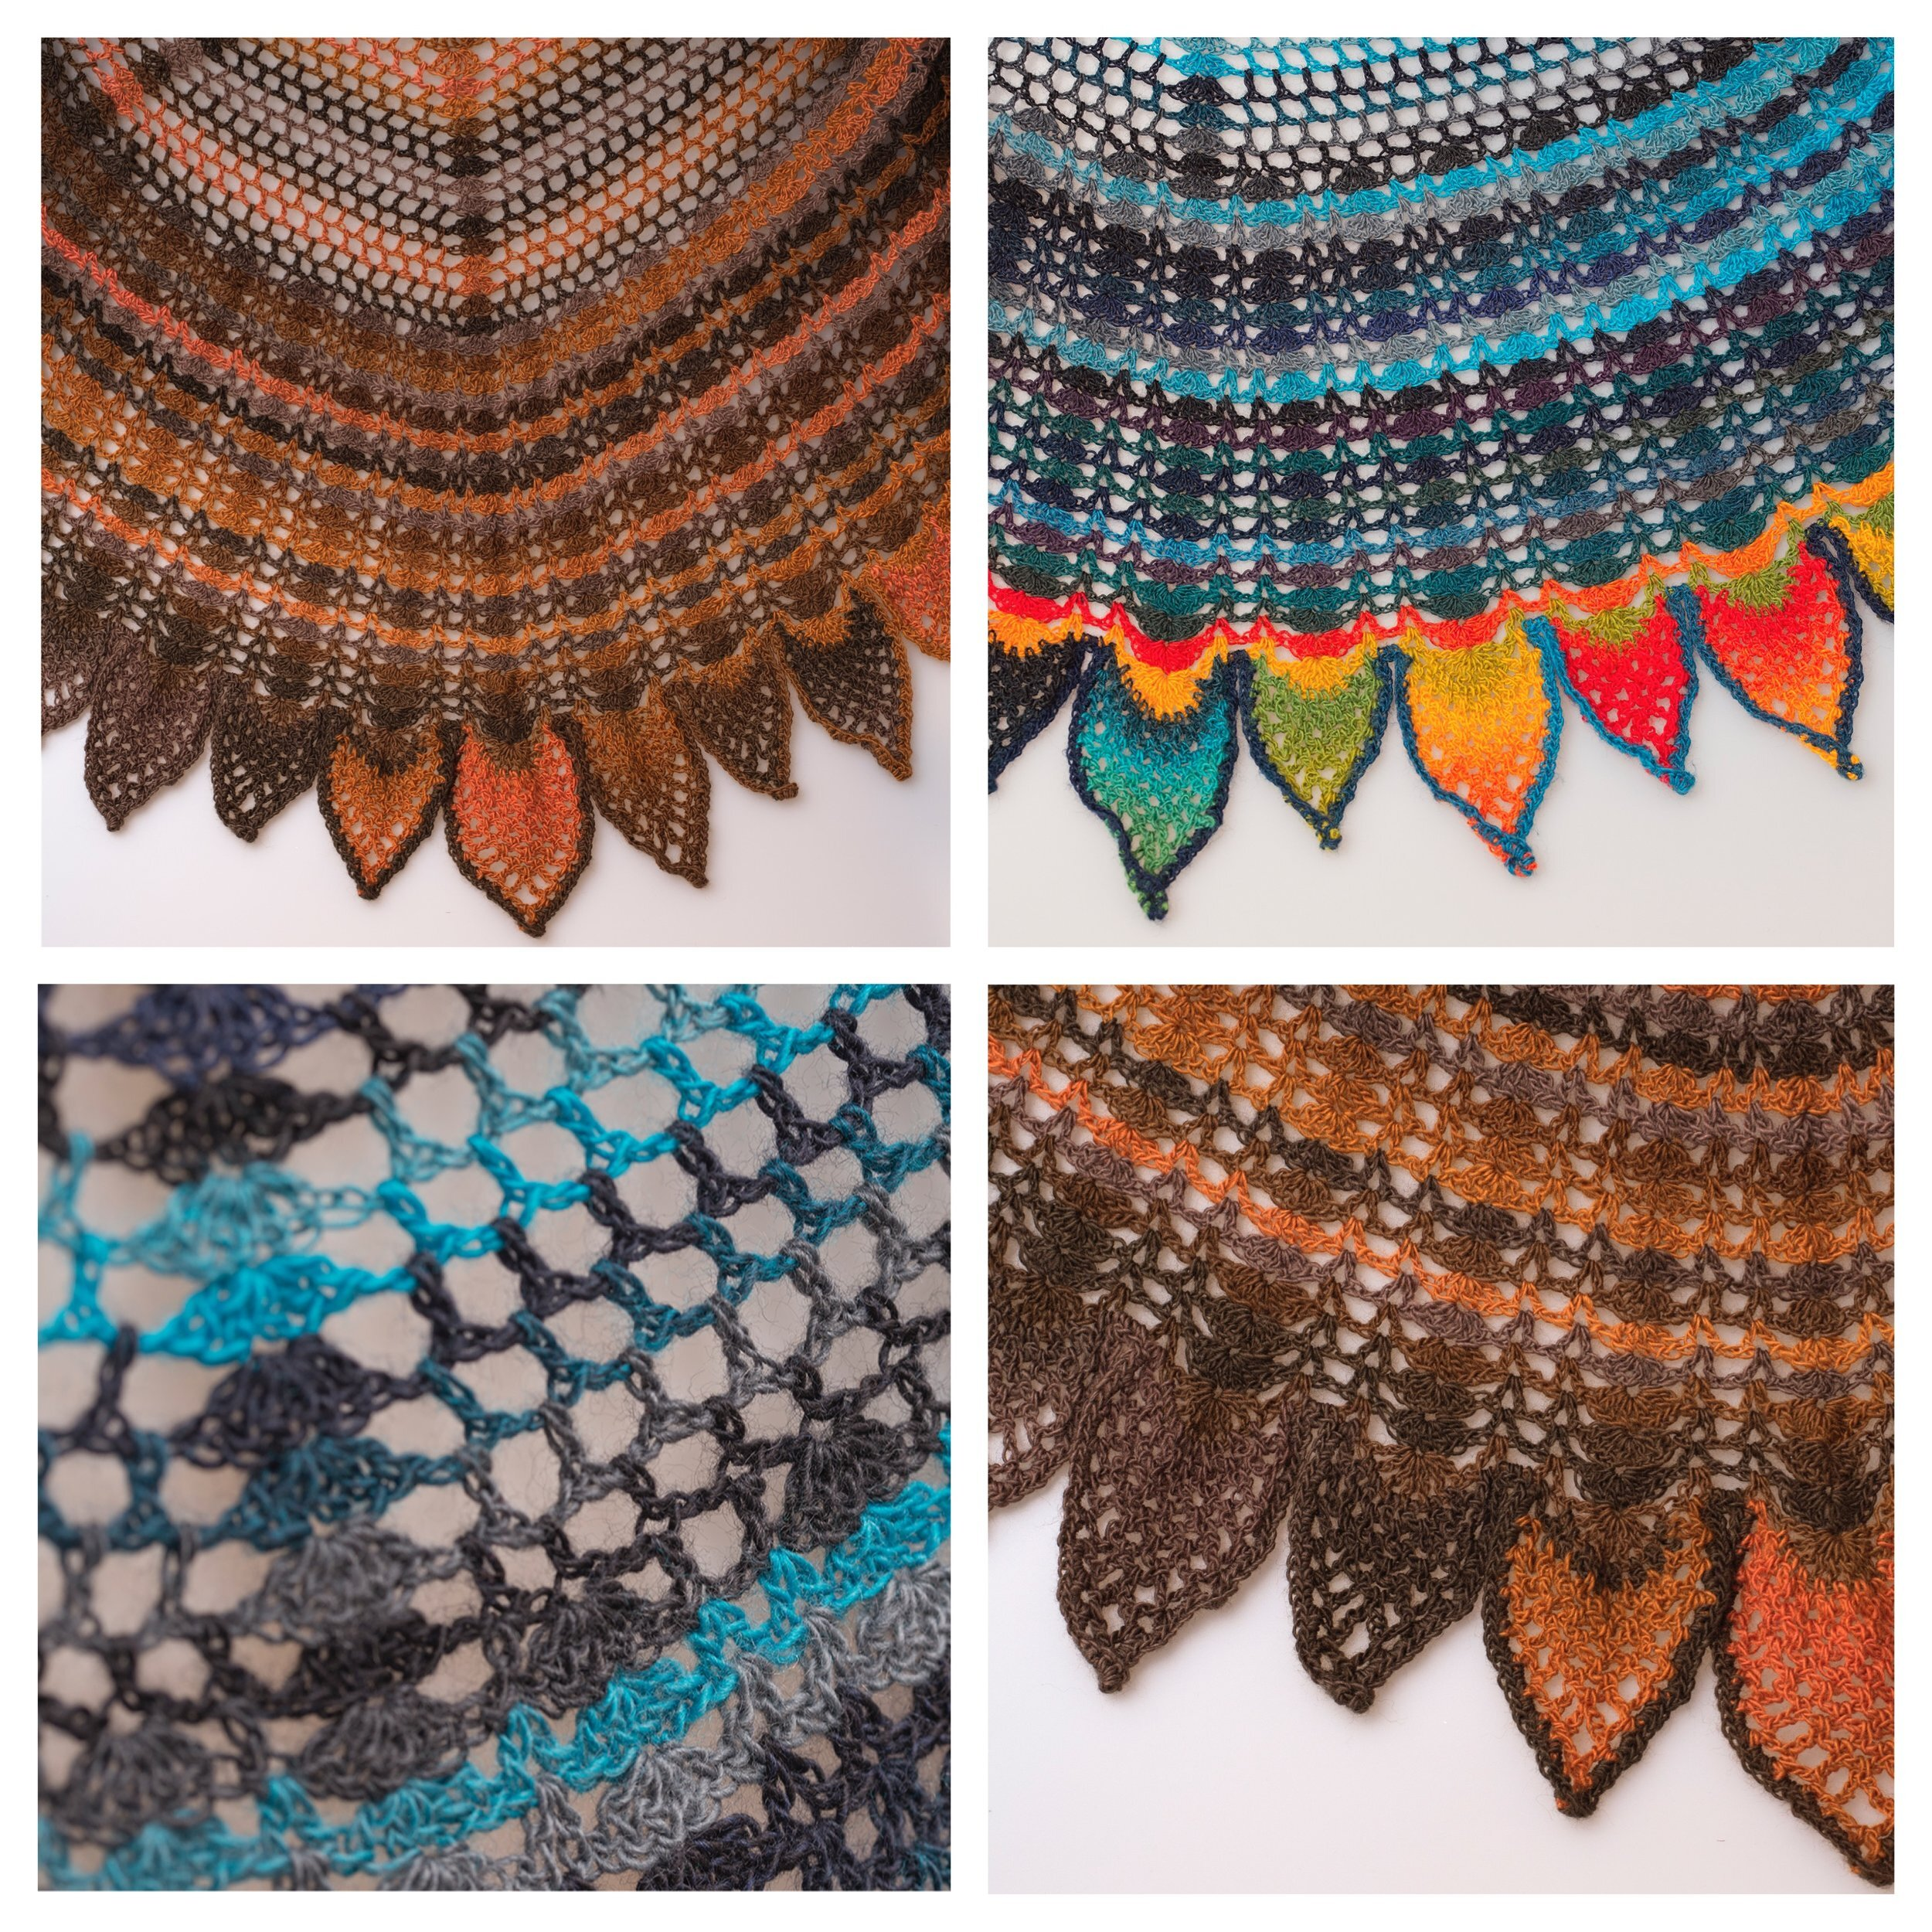 Jessica Crochet Shawl Pattern - Lovely lac shawl with a detailed lace border.